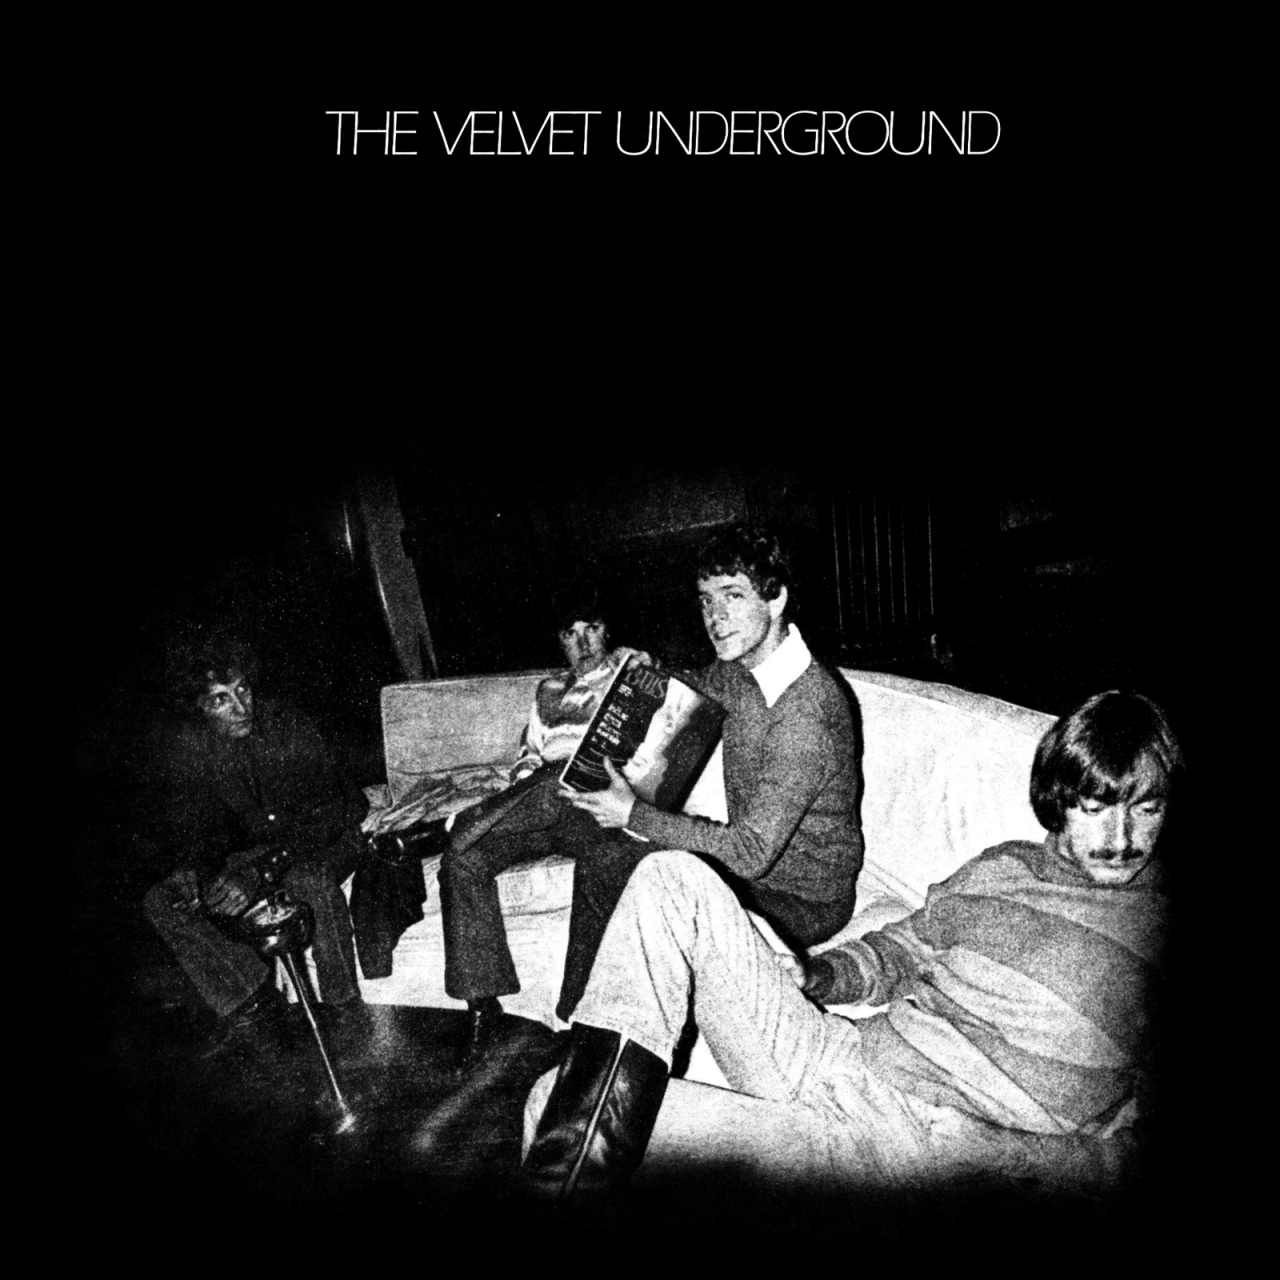 The Velvet Underground 'The Velvet Underground', MGM, 1969. Photograph by Billy Name, art direction by Dick Smith.